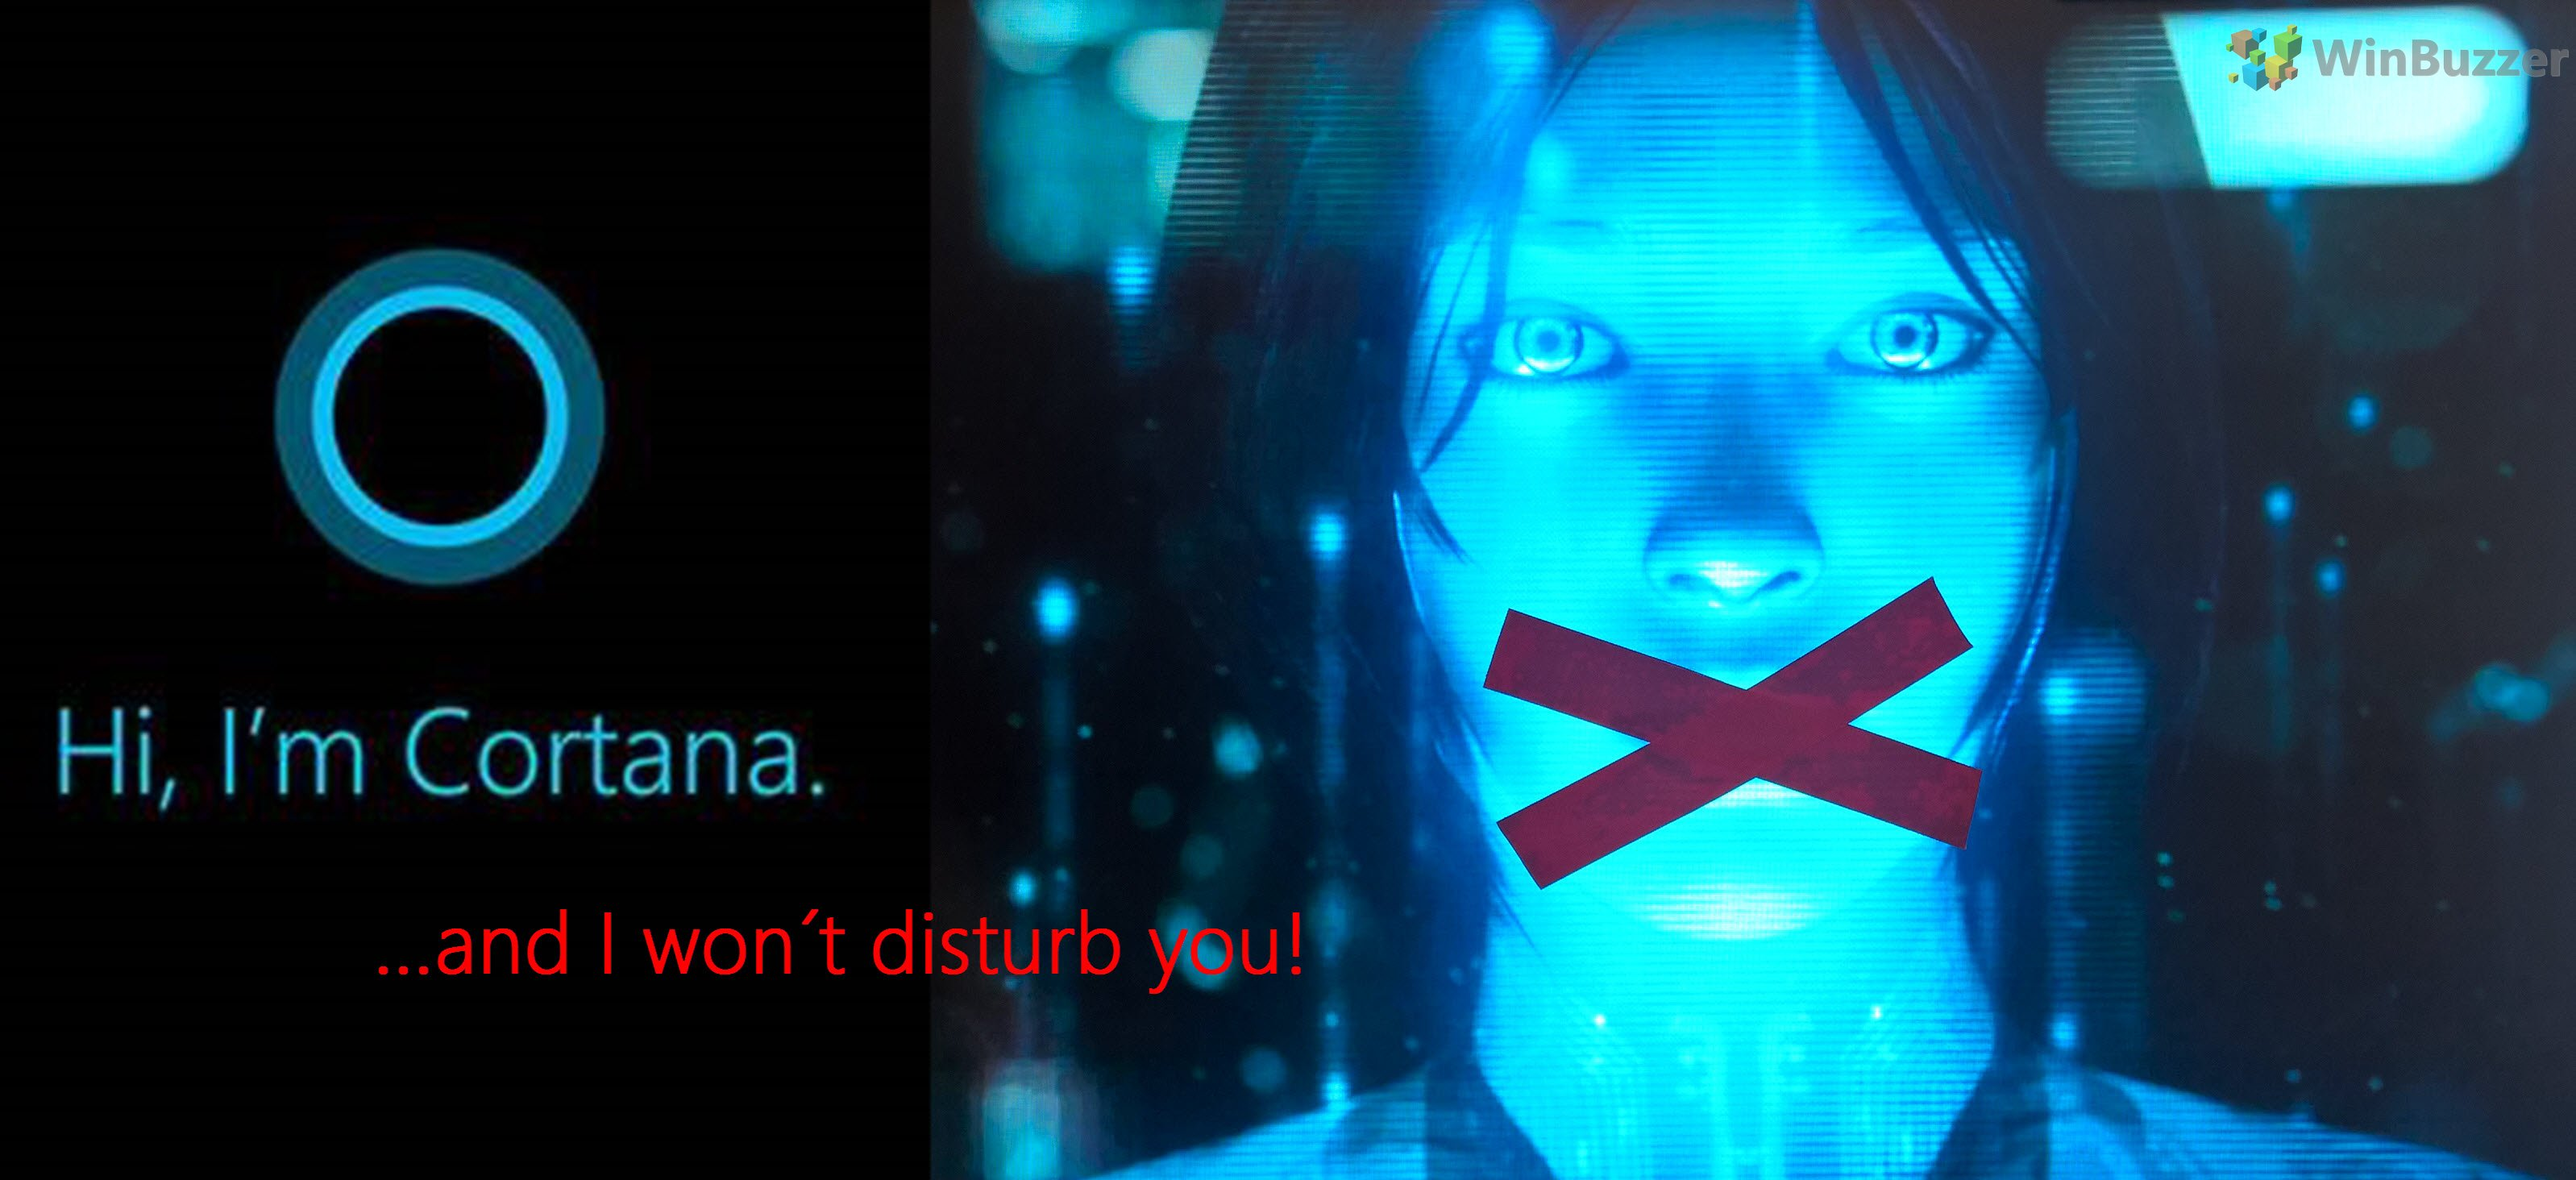 Halo Wallpaper Hd How To Disable Cortana Turning The Voice Assistant Of